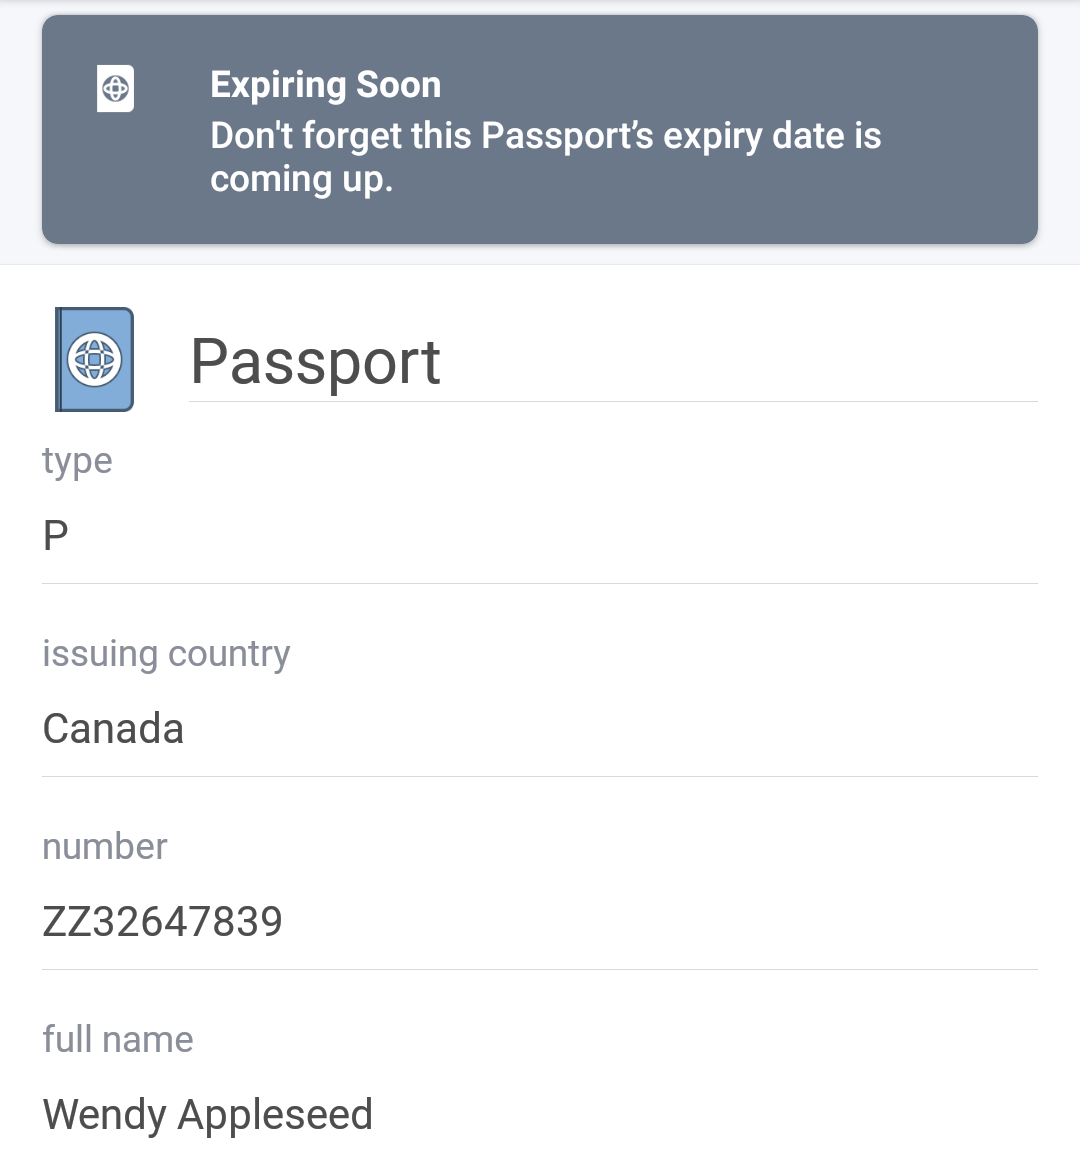 Expiring Passport item